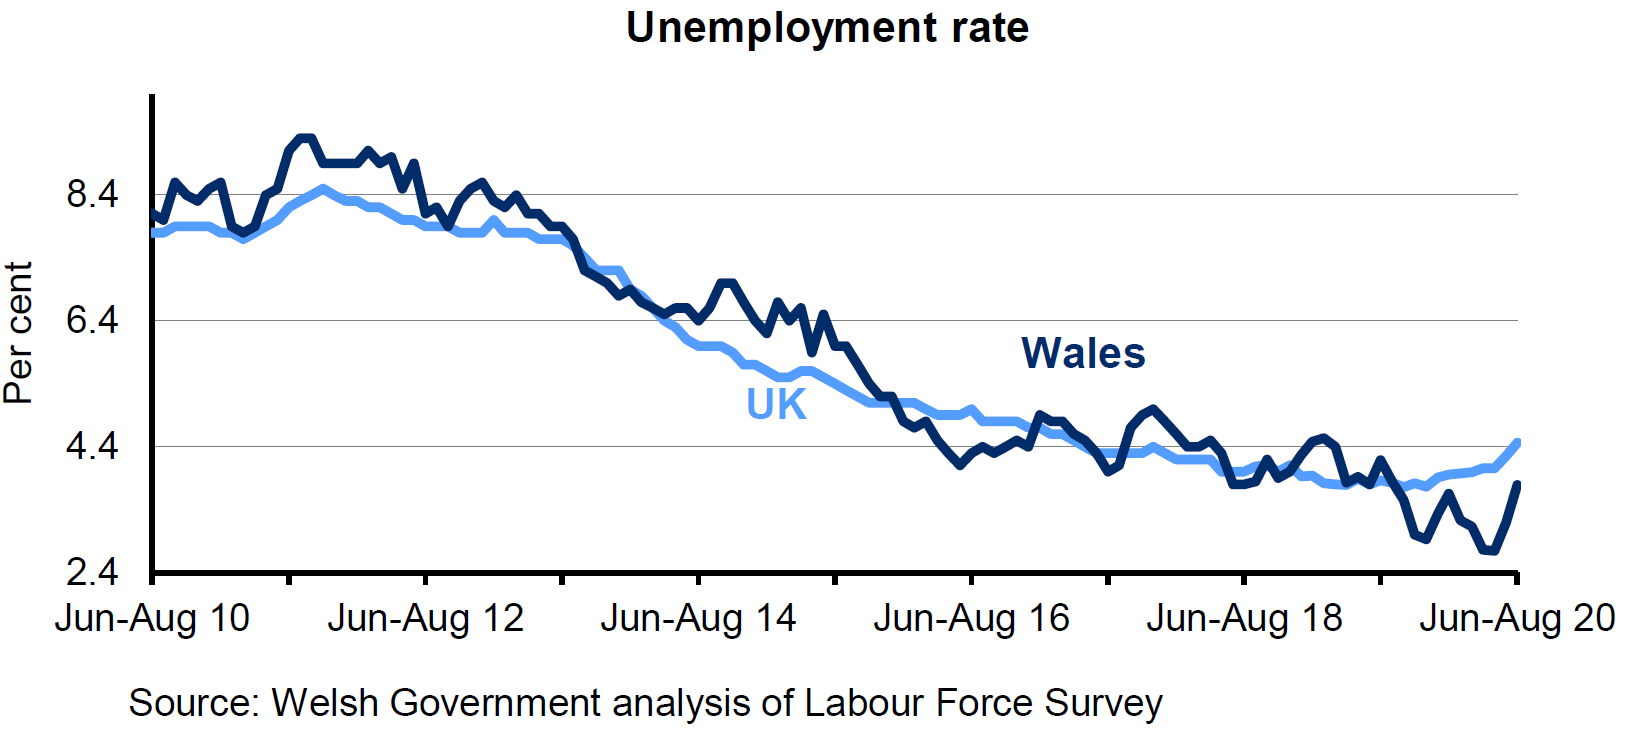 Chart showing the percentage of economically active people aged 16+ who are unemployed for Wales and the UK. The unemployment rate has decreased overall in both Wales and the UK over the last 4 years, but has increased over the last couple of months